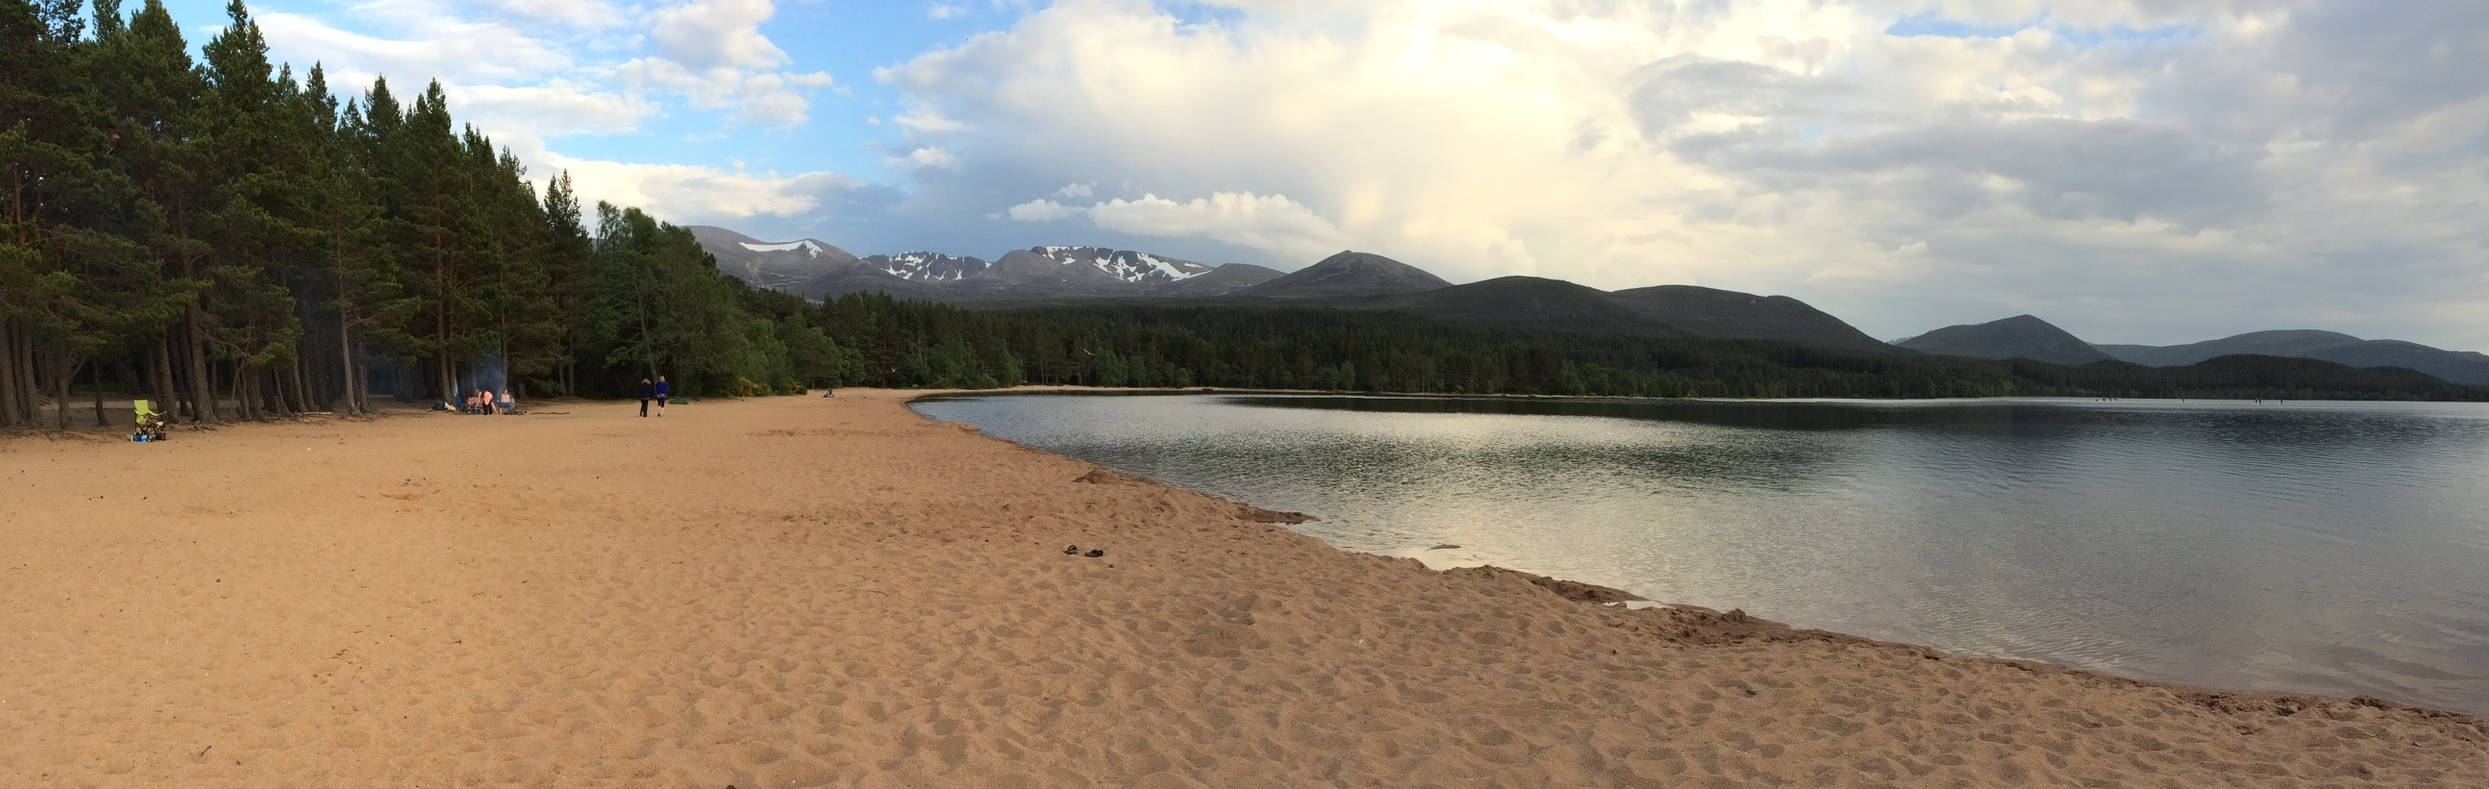 Loch Morlich beach - a blue flag beach inland with watersports equipment available for hire